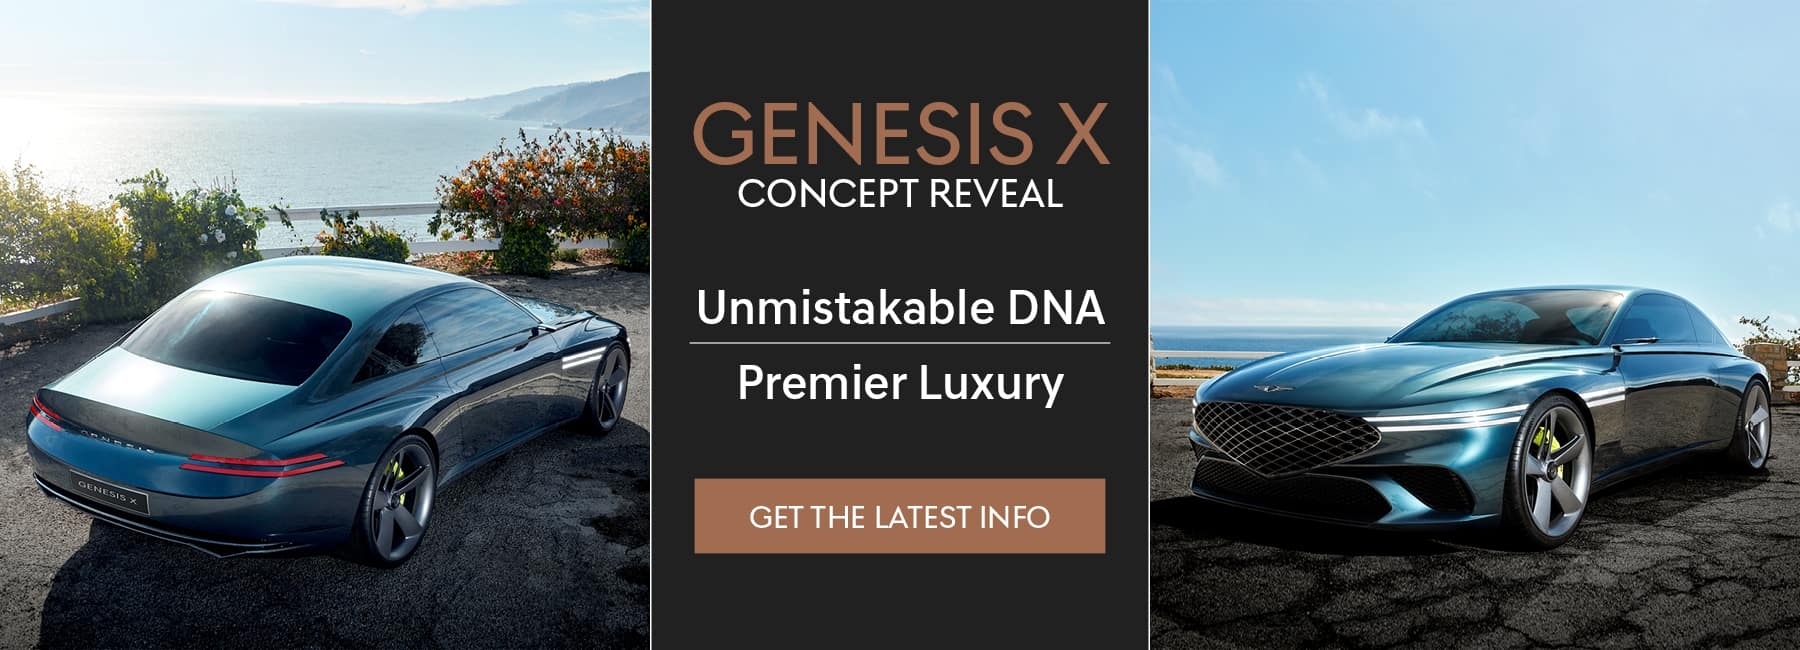 Introducing the Genesis X Concept Reveal